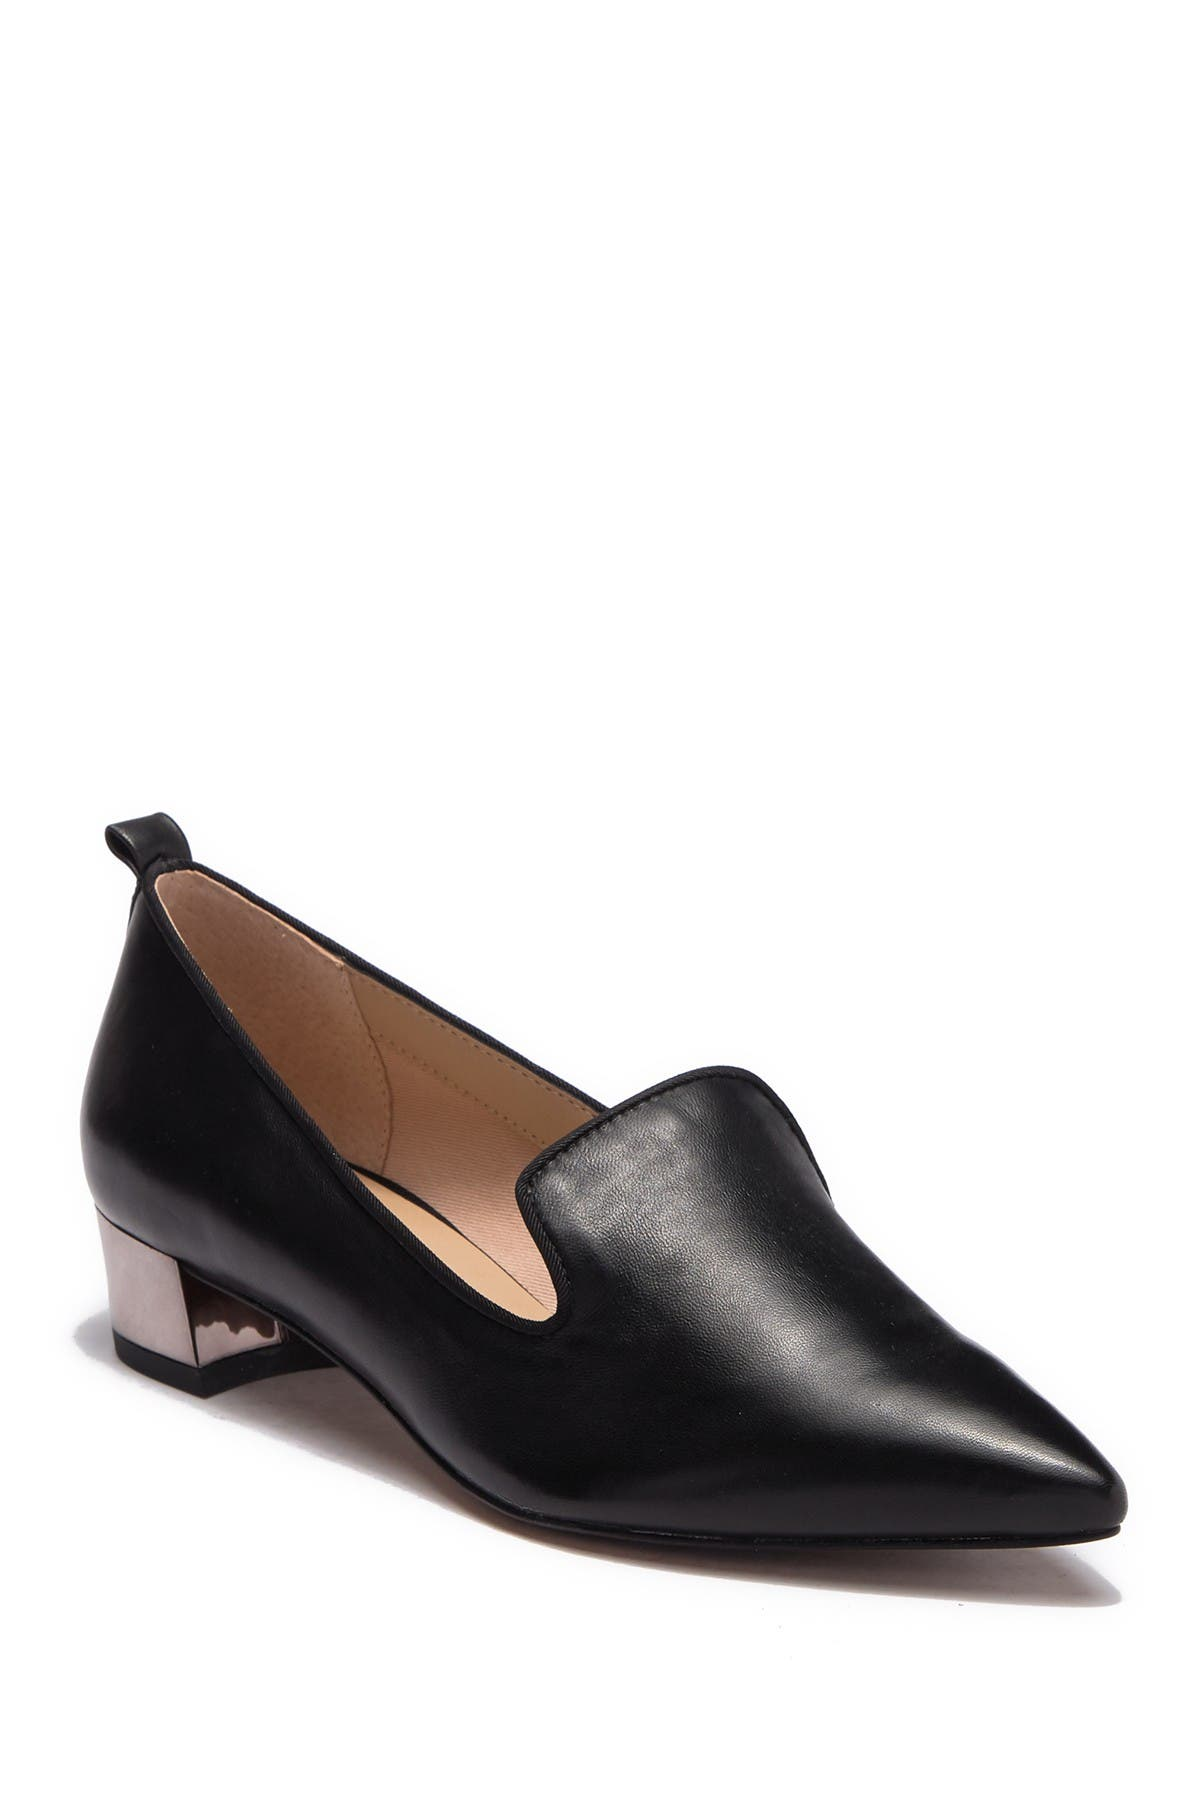 Image of Franco Sarto Vianna Leather Block Heel Loafer